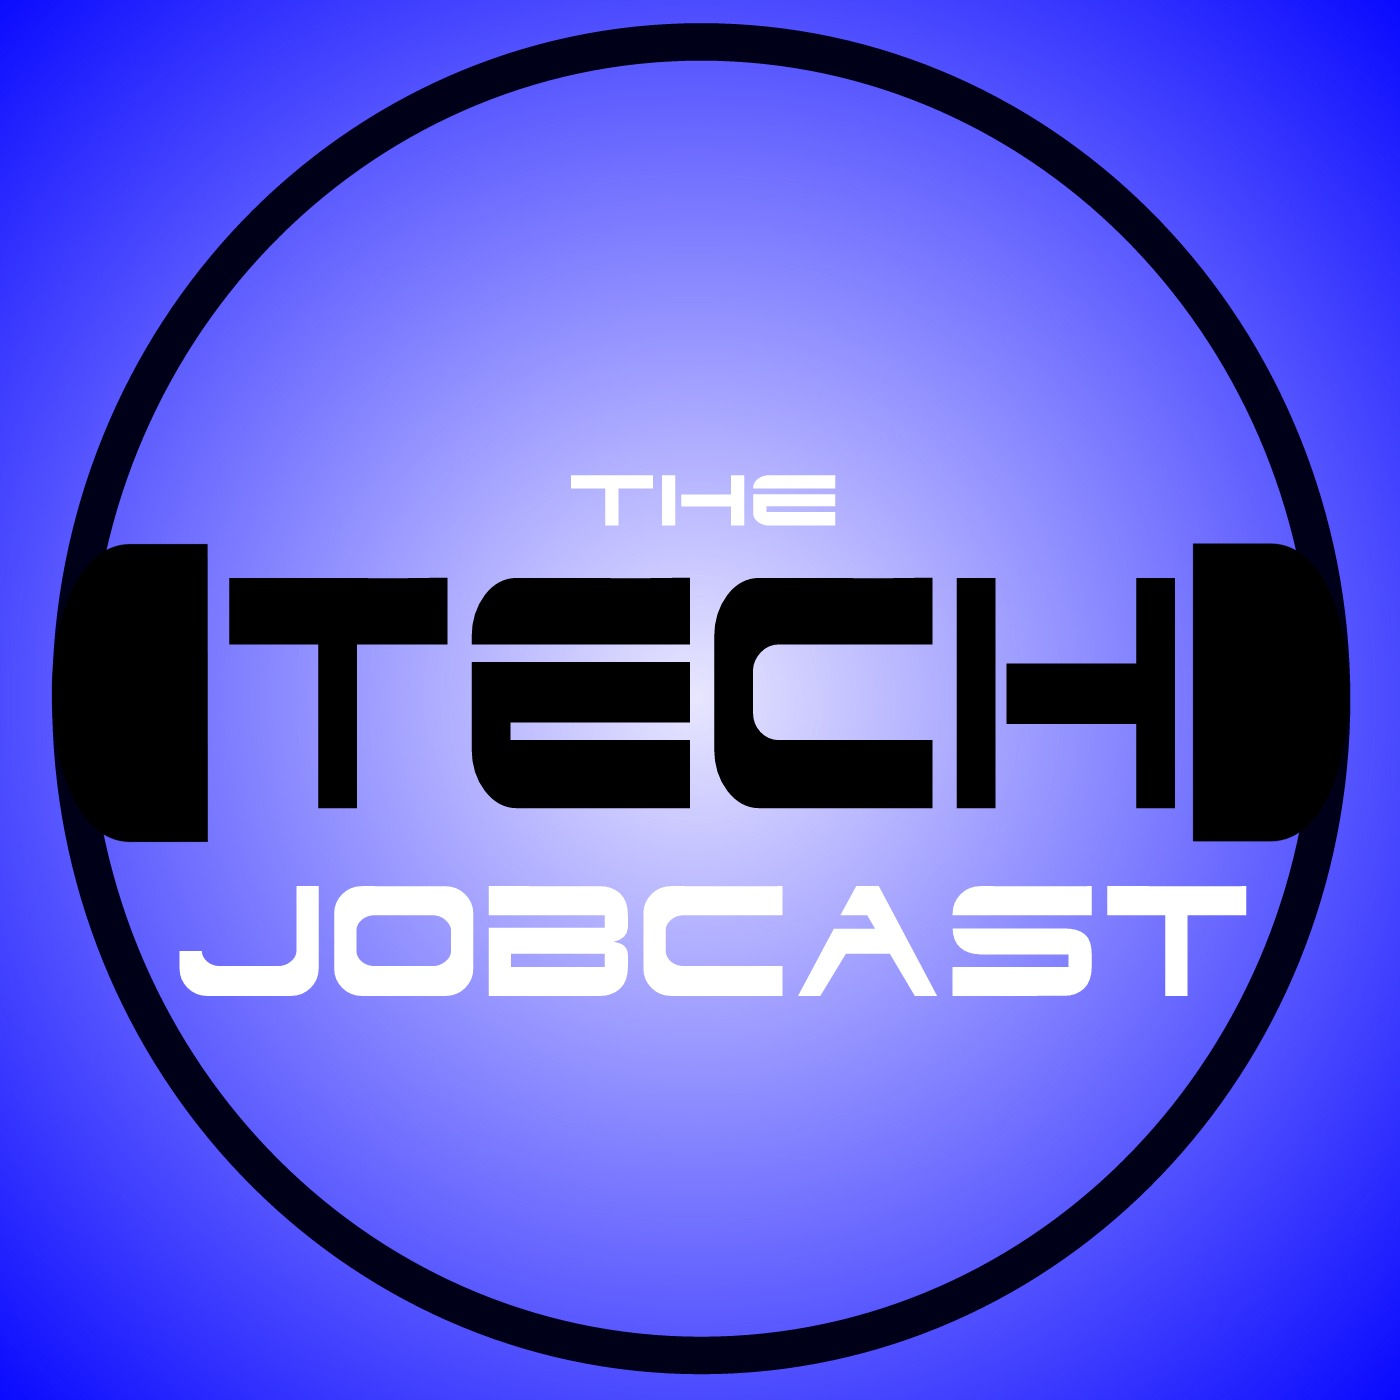 IT Job listings for the week of July 1, 2018